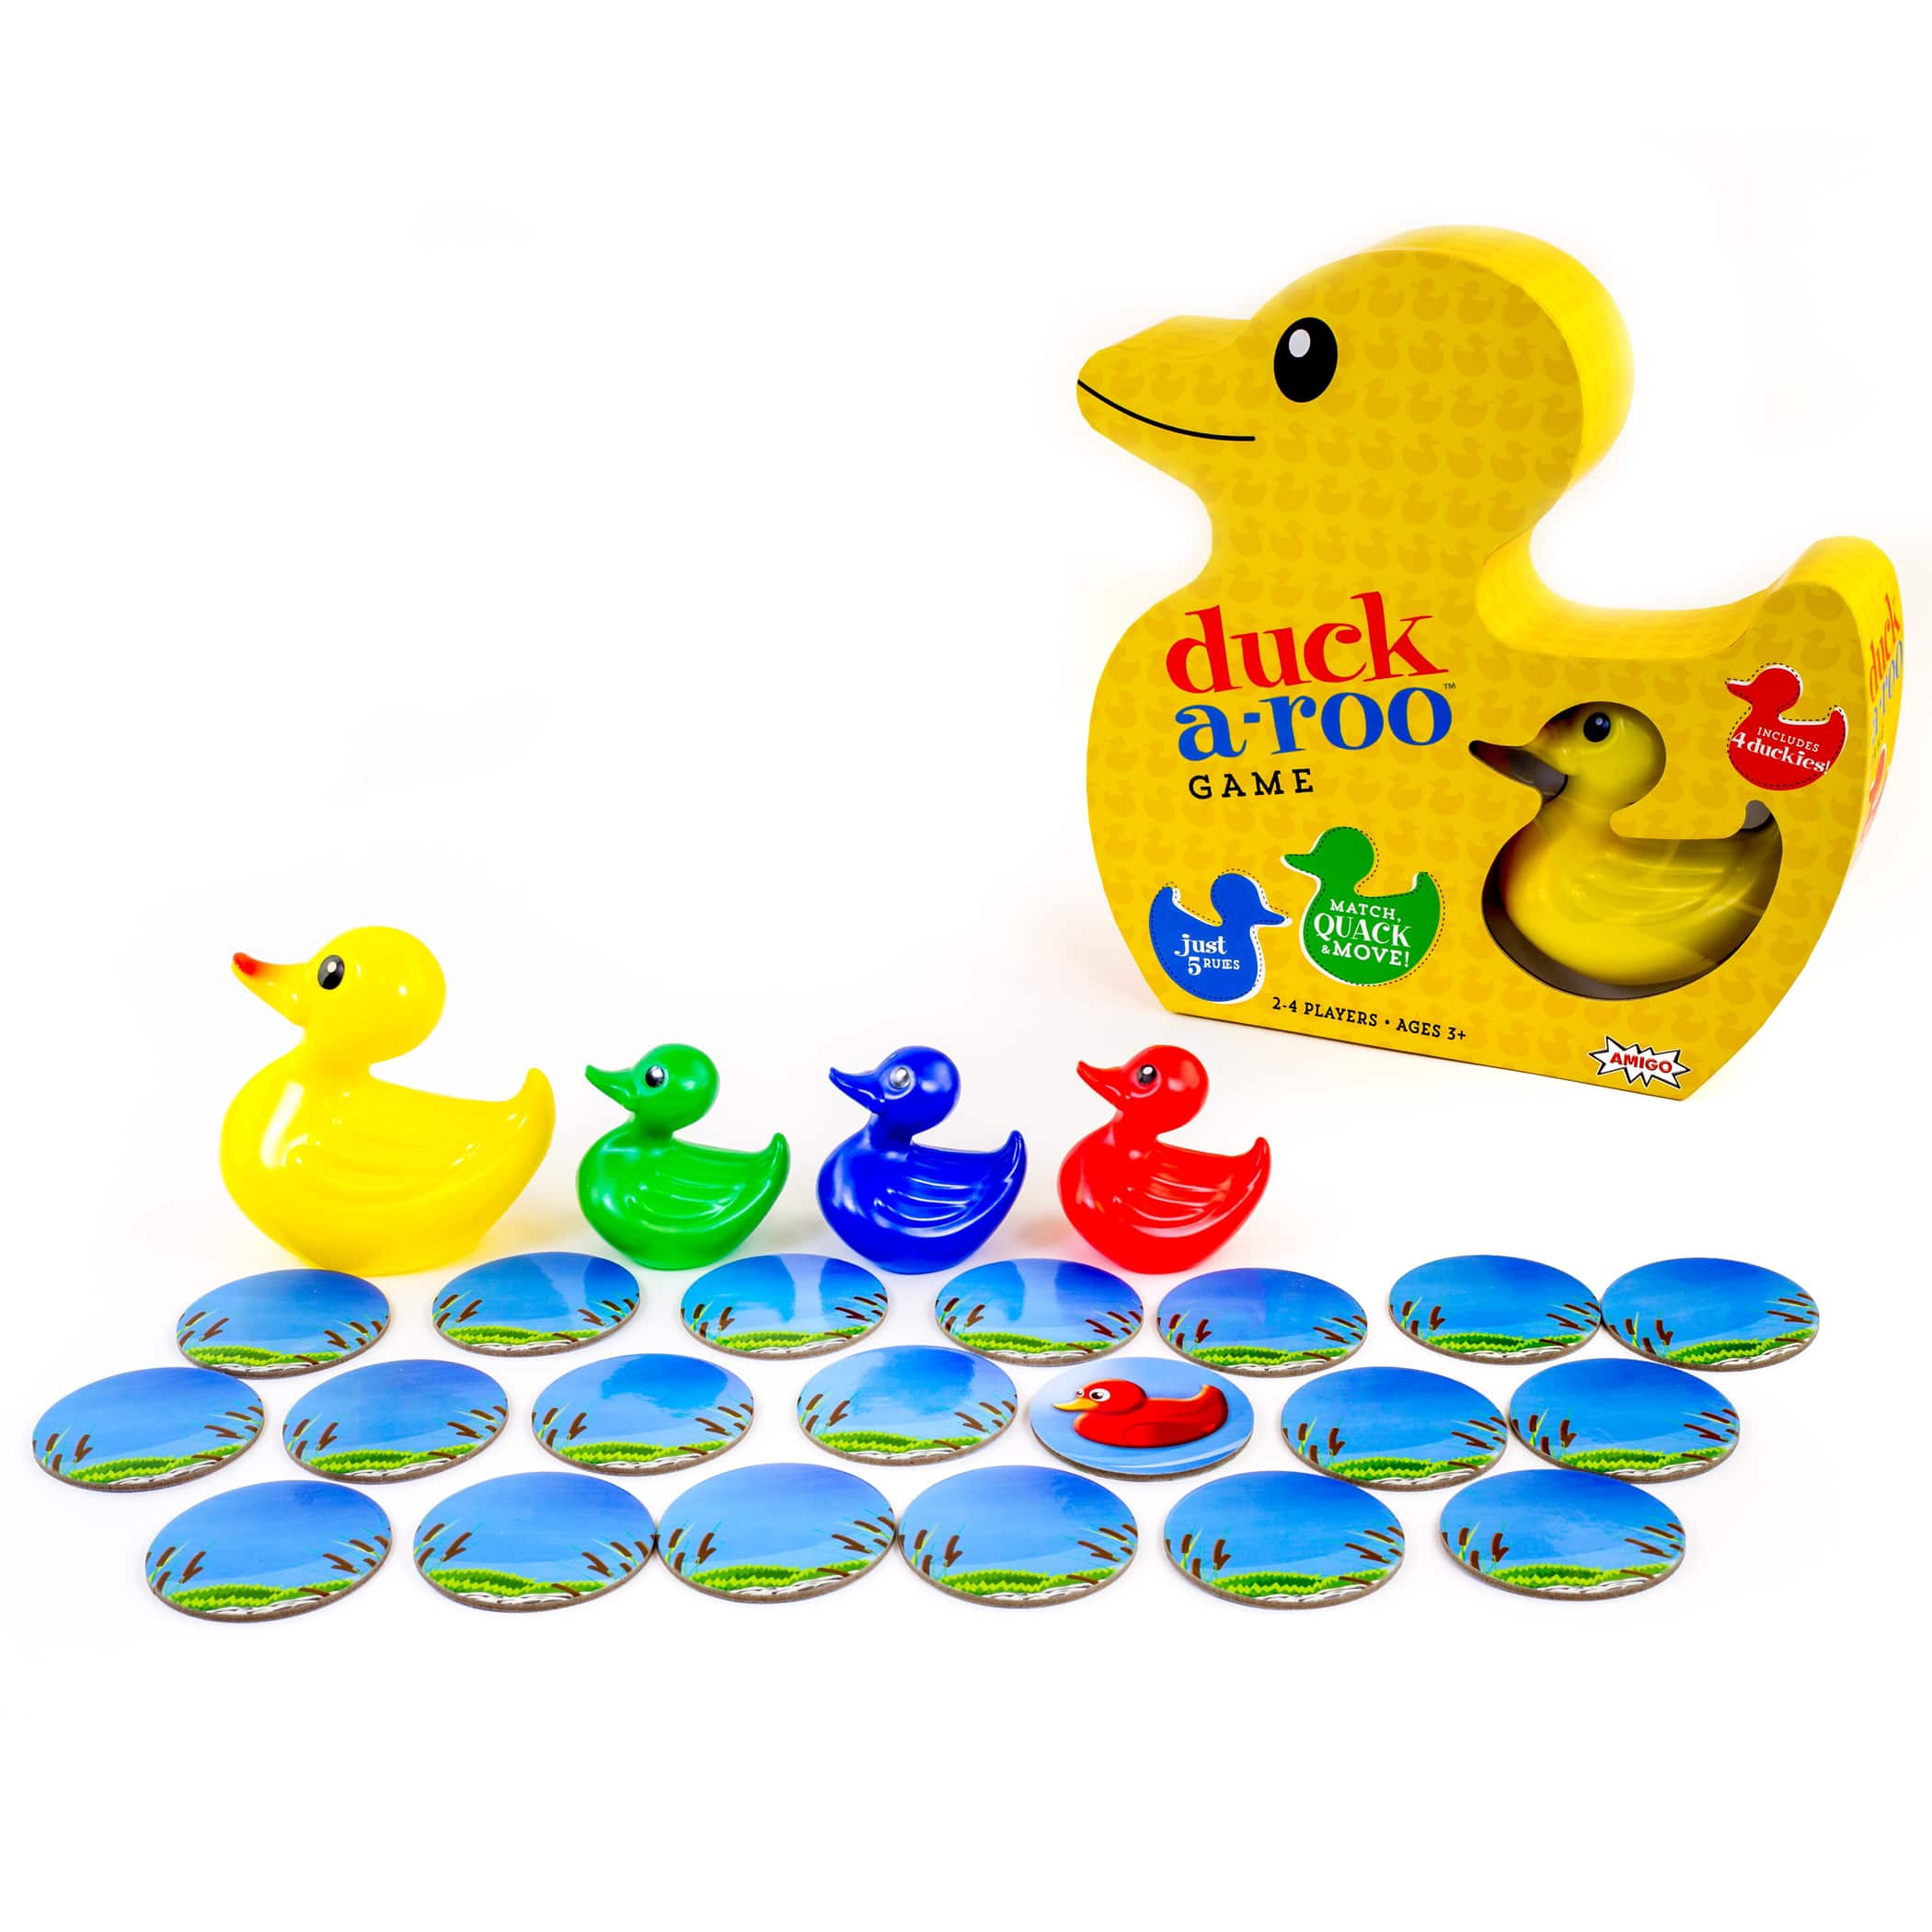 Duck-A-Roo! Kids Memory Game in a Duck-Shaped Box $4.69